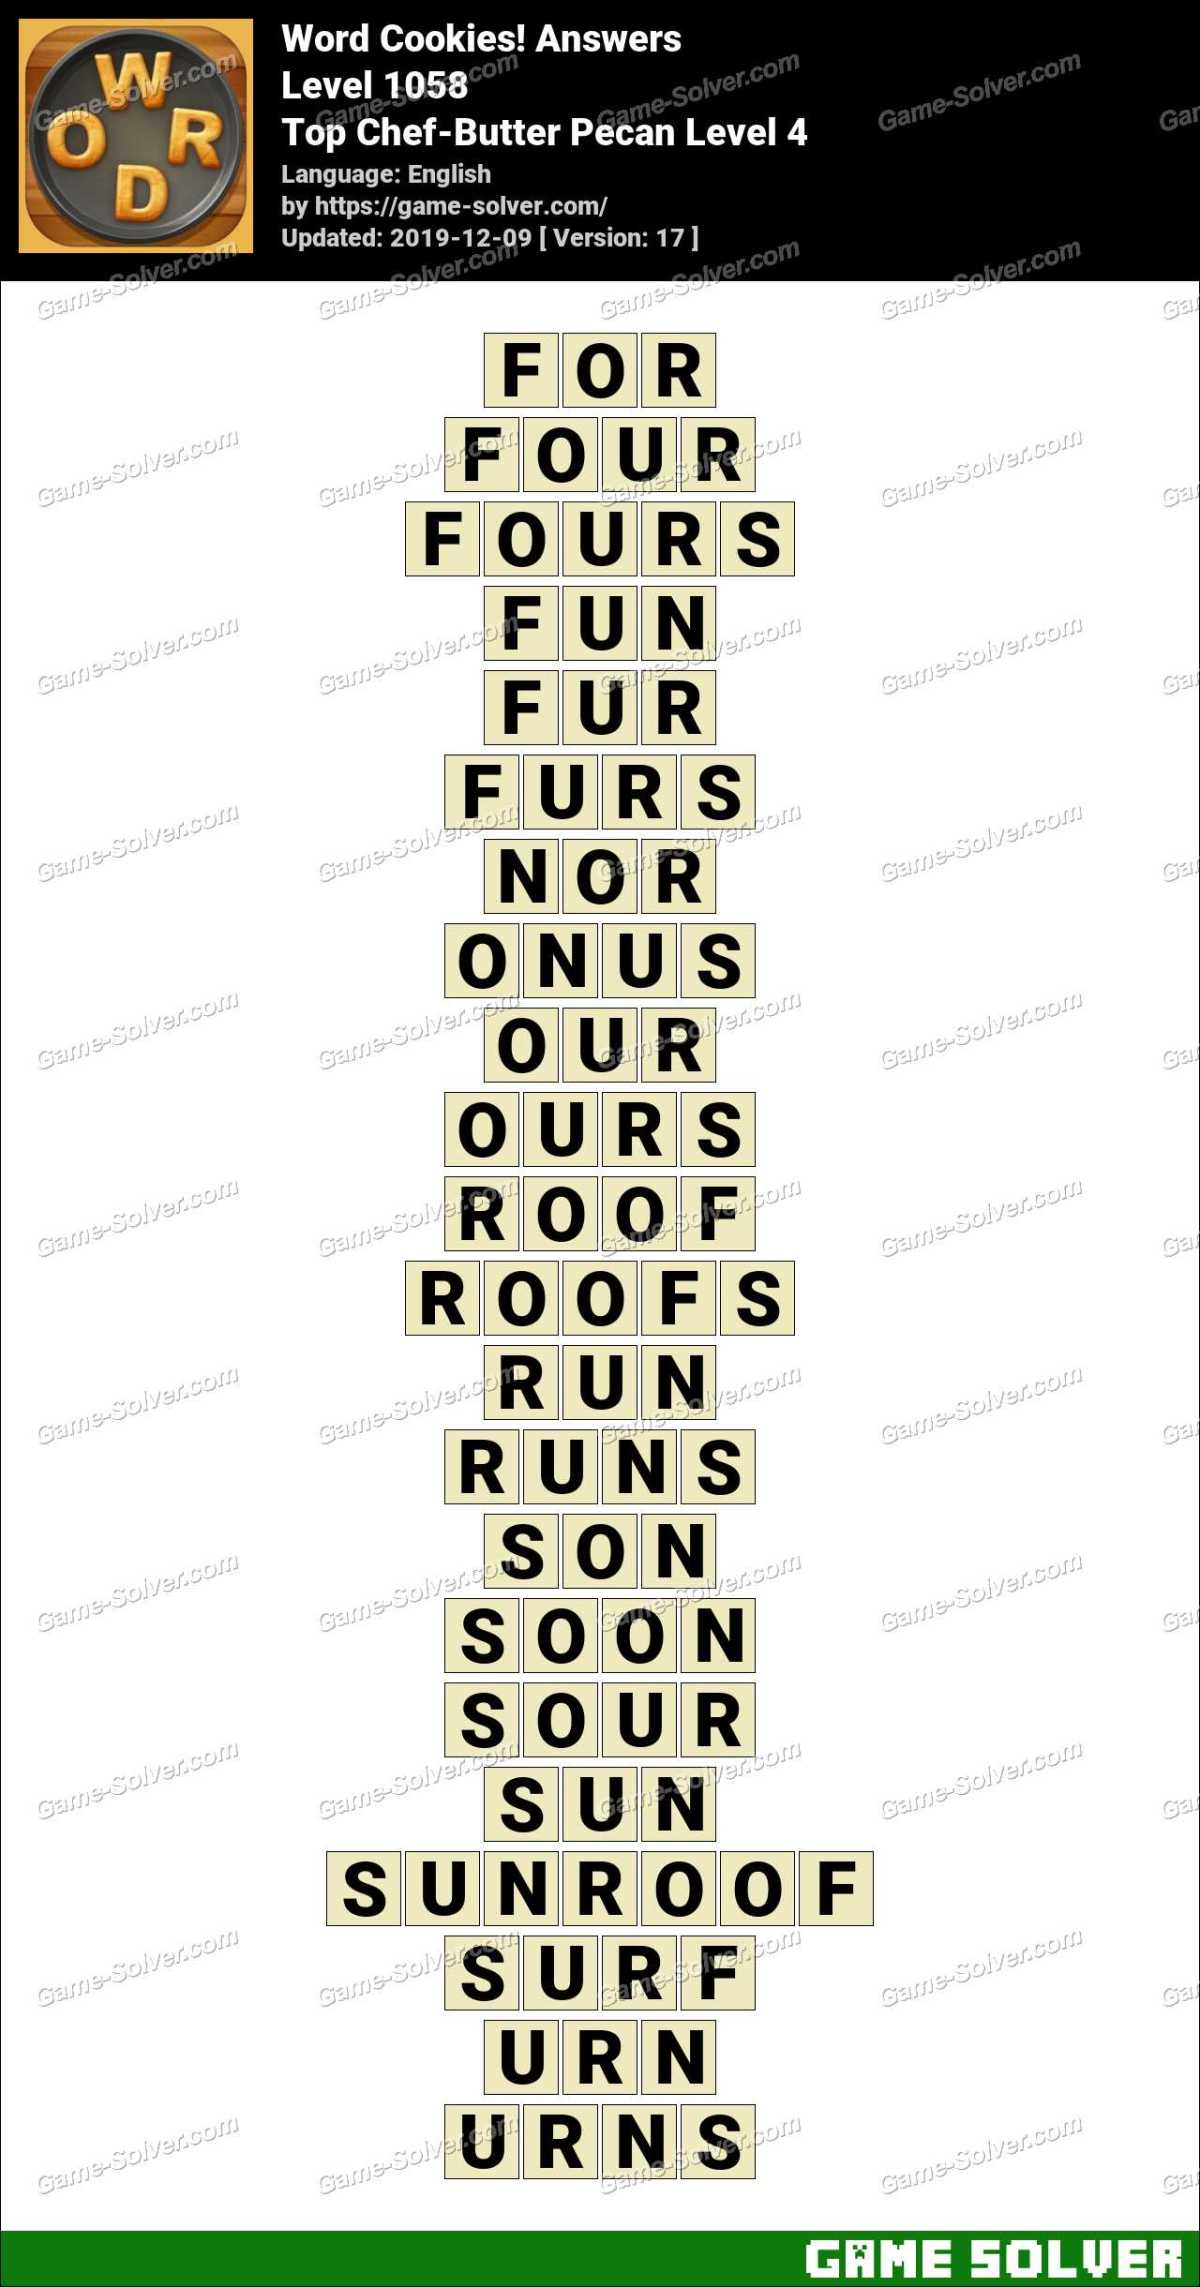 Word Cookies Top Chef-Butter Pecan Level 4 Answers